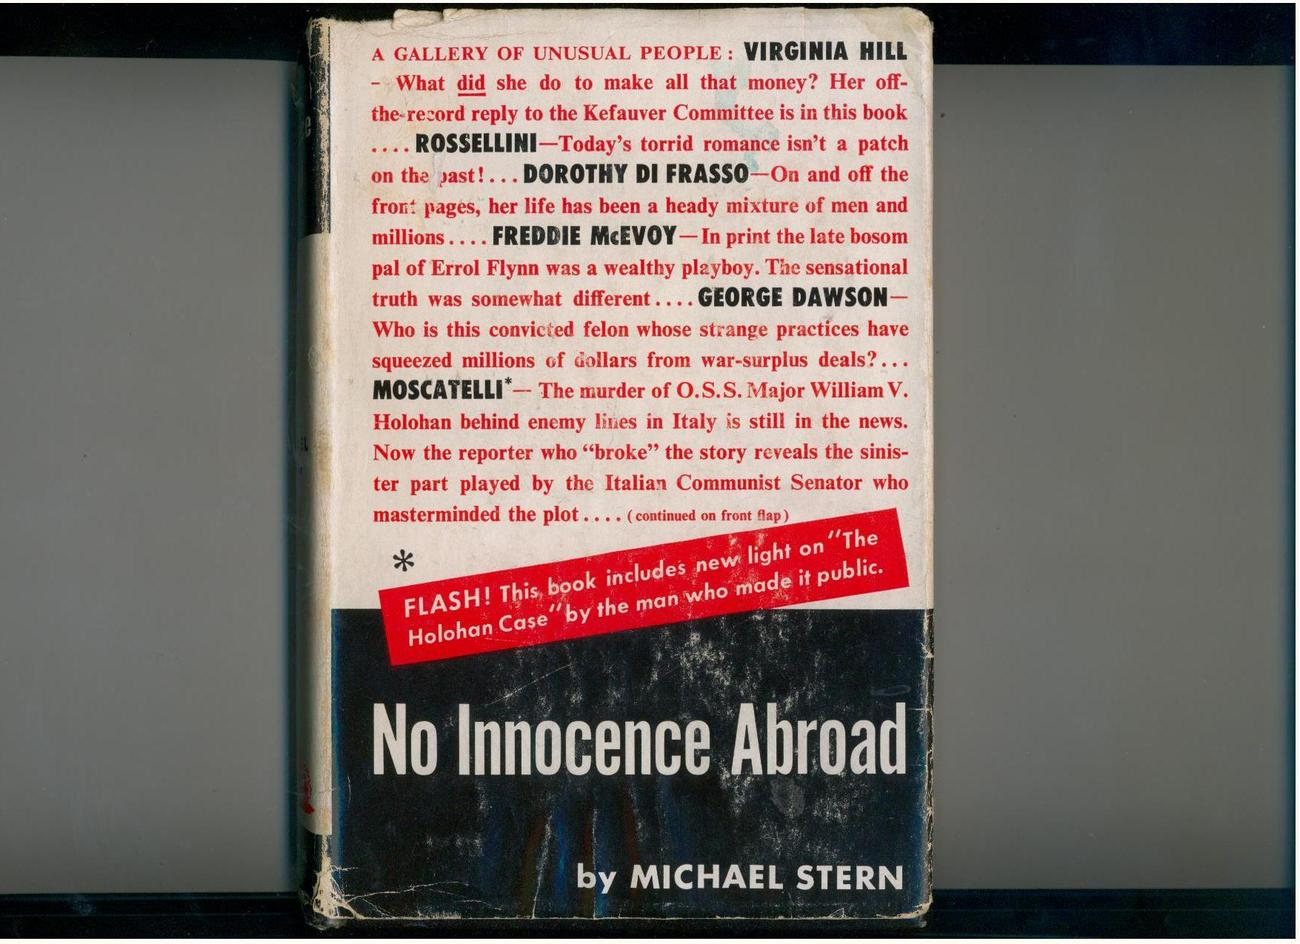 Michael Stern  NO INNOCENCE ABROAD  1953, 1st, exposes, oop